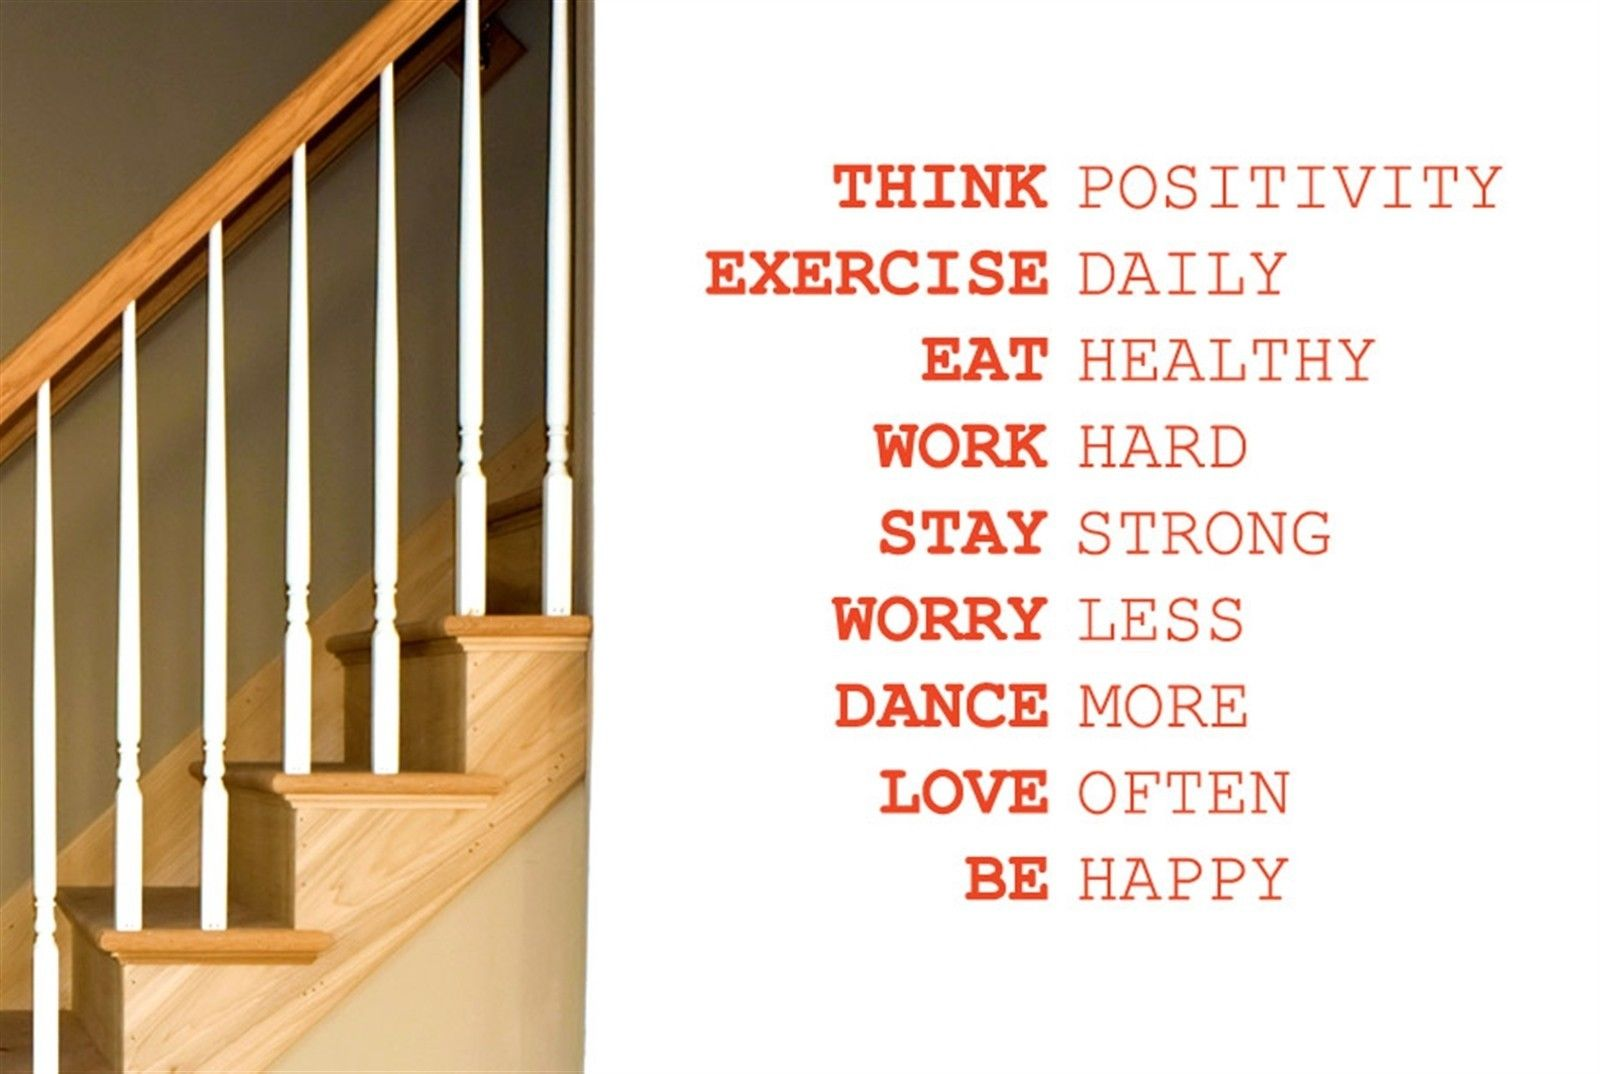 Q026 Think Positivity Exercise Daily Work Hard Wall Stiker Art Decals - Διακόσμηση σπιτιού - Φωτογραφία 1